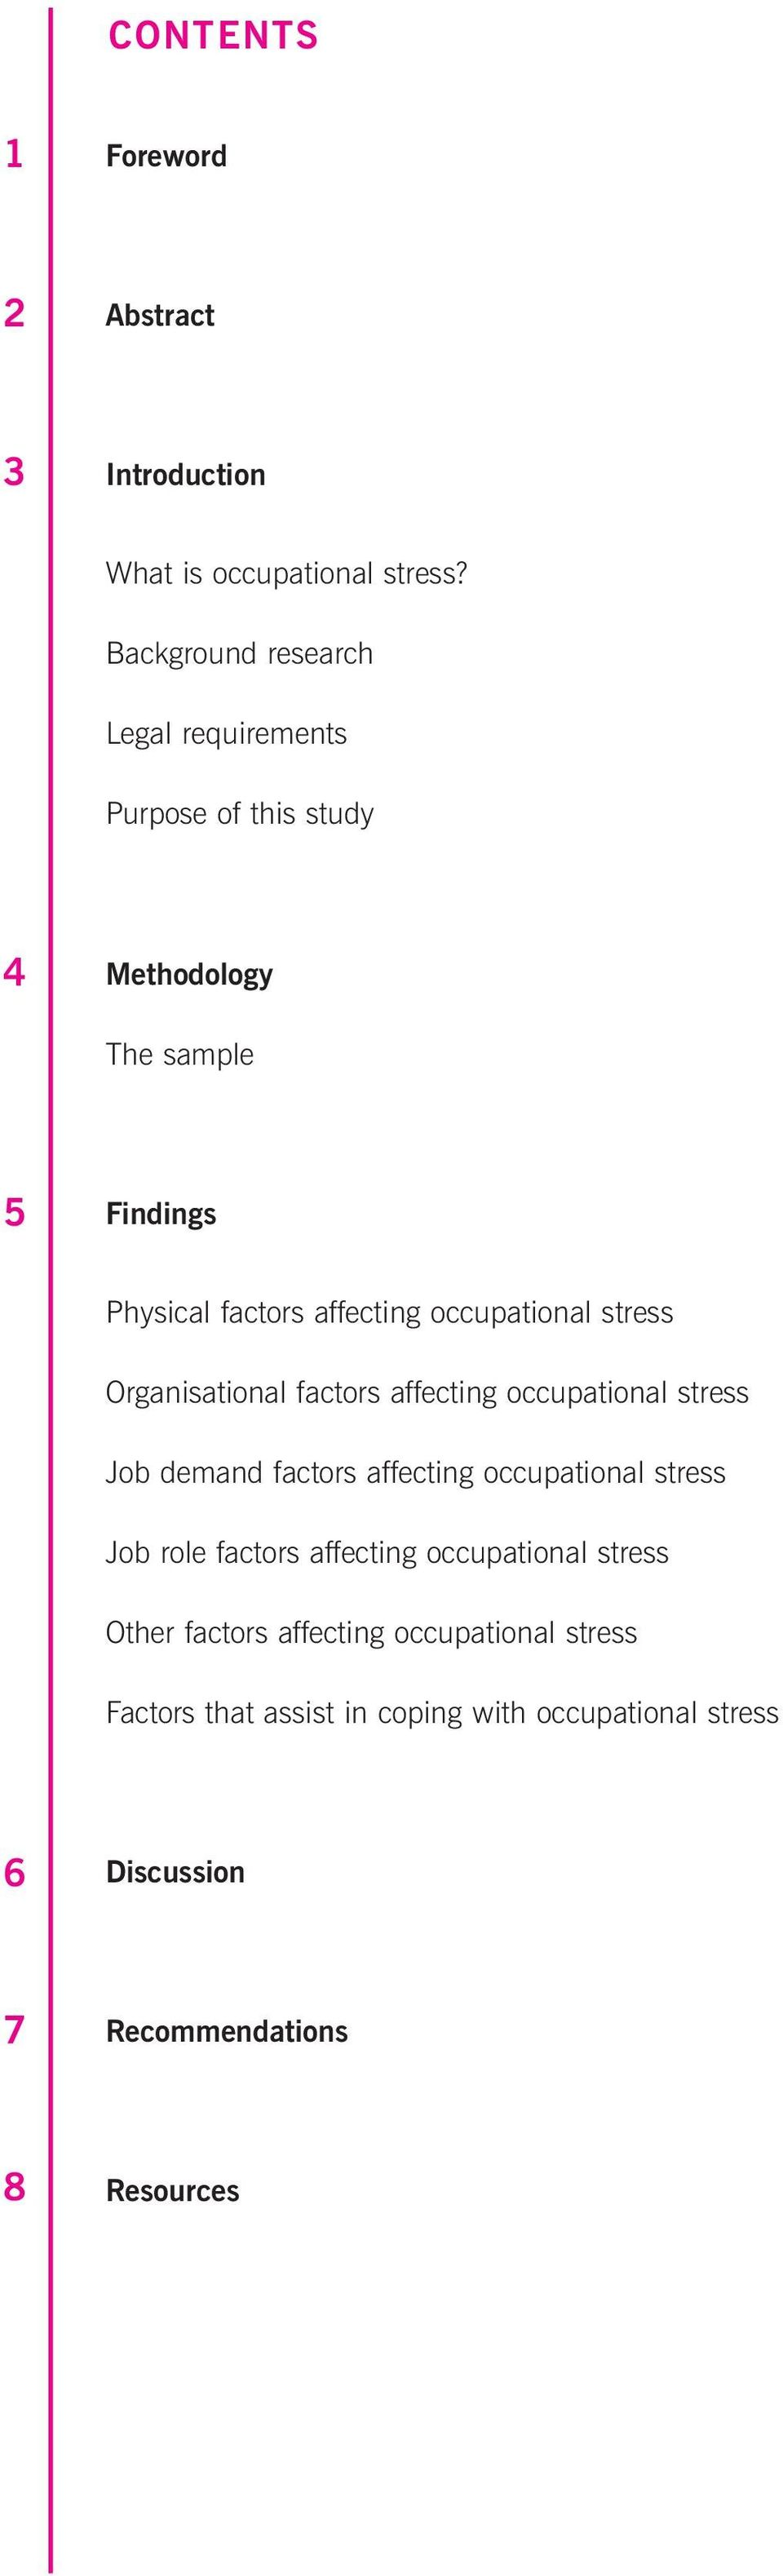 occupational stress Organisational factors affecting occupational stress Job demand factors affecting occupational stress Job